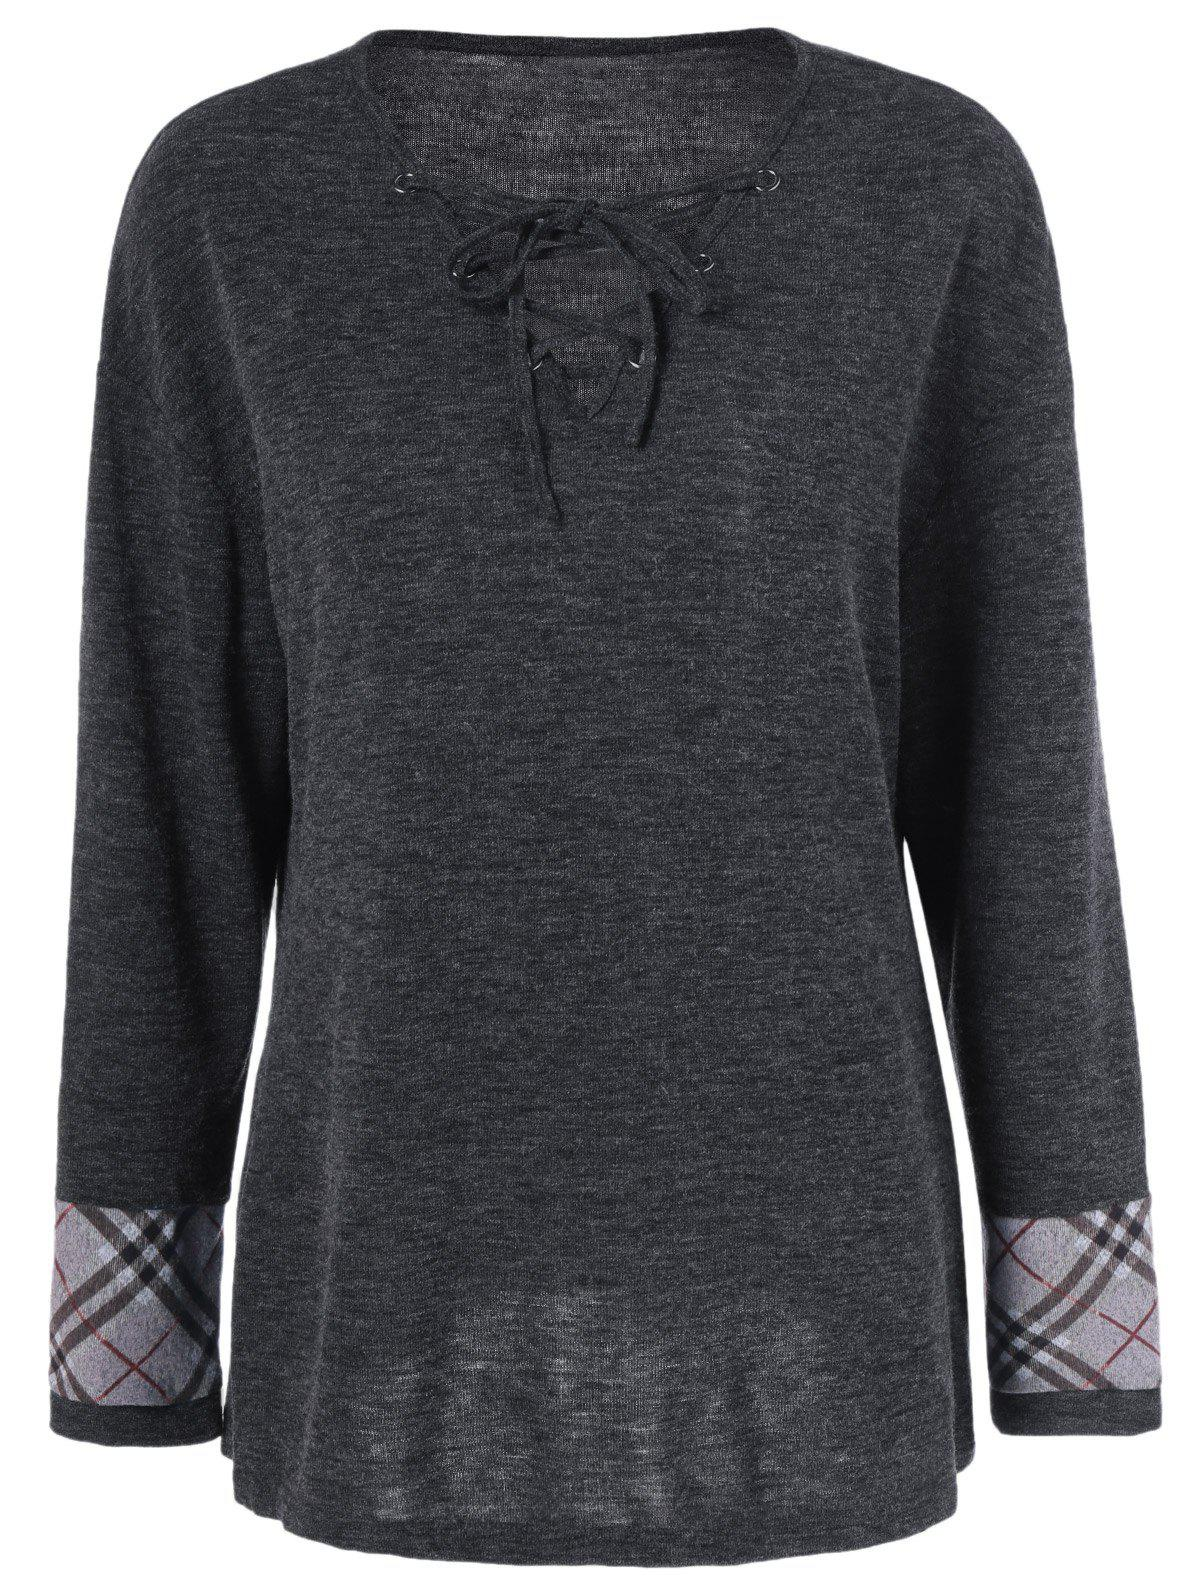 Plus Size Plaid Trim Lace-Up Tee - BLACK GREY XL